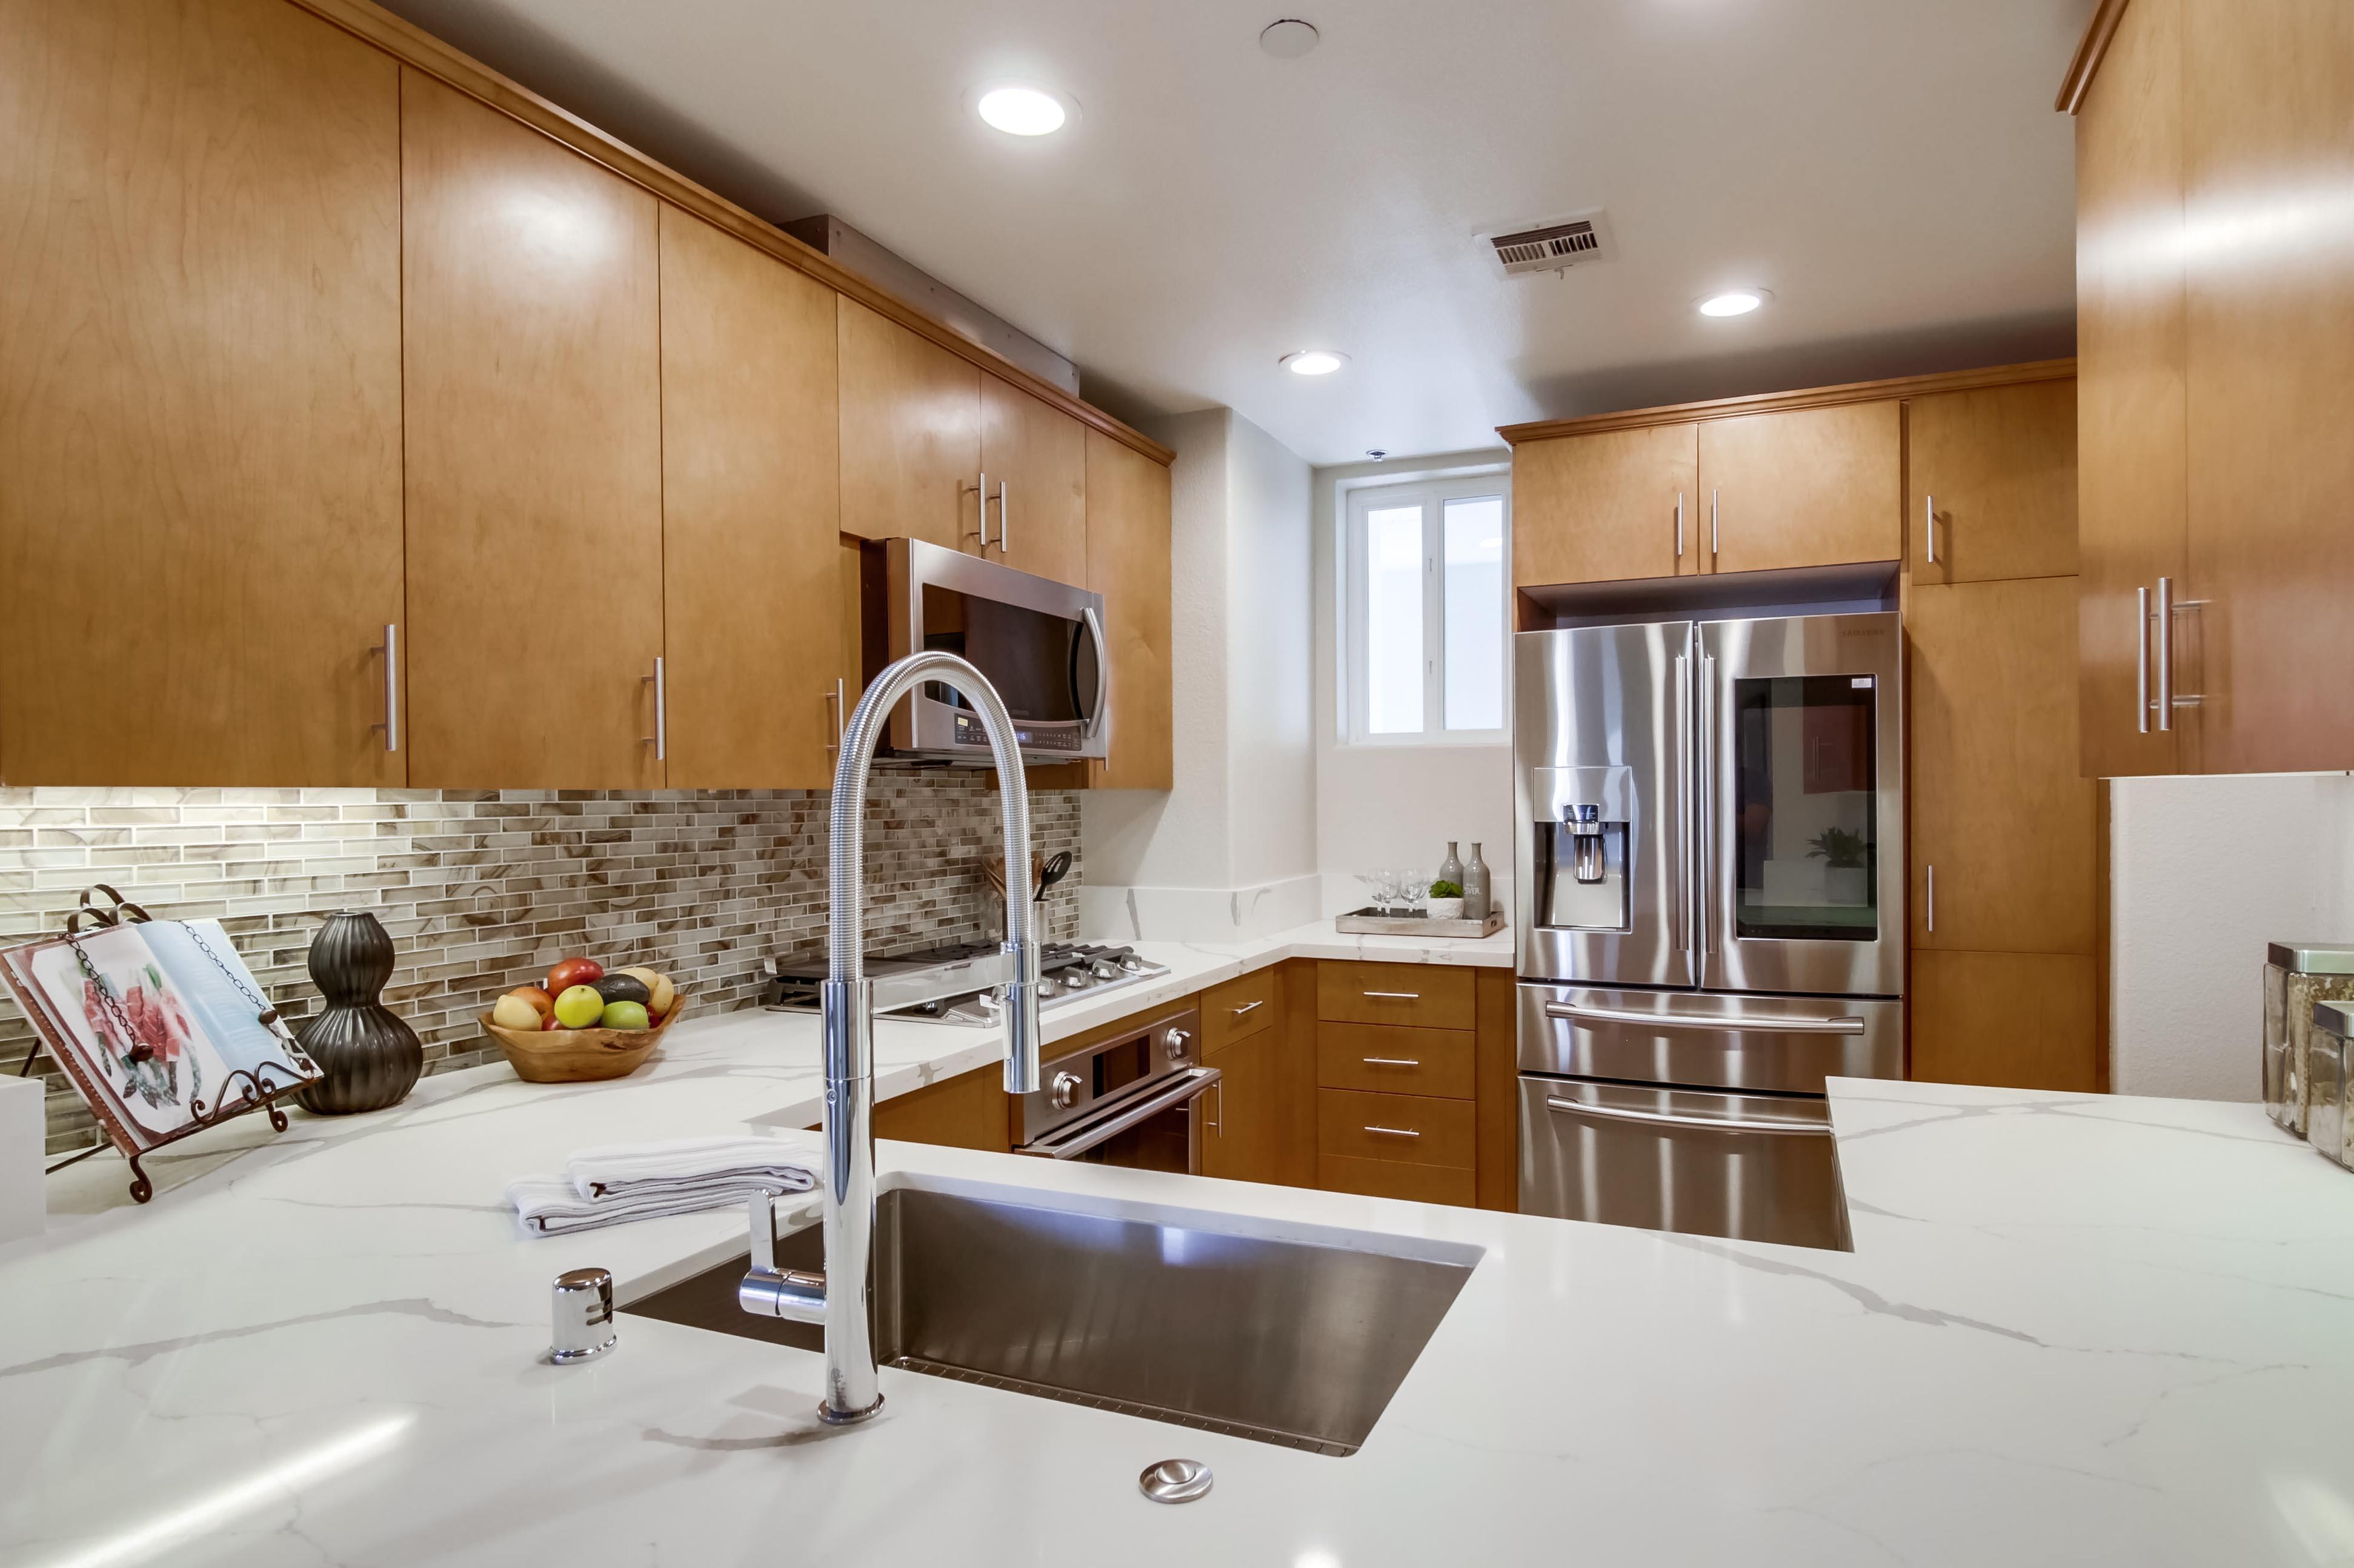 Kitchen featured in the #403 By Next Space Dev - Epic on 5th in San Diego, CA